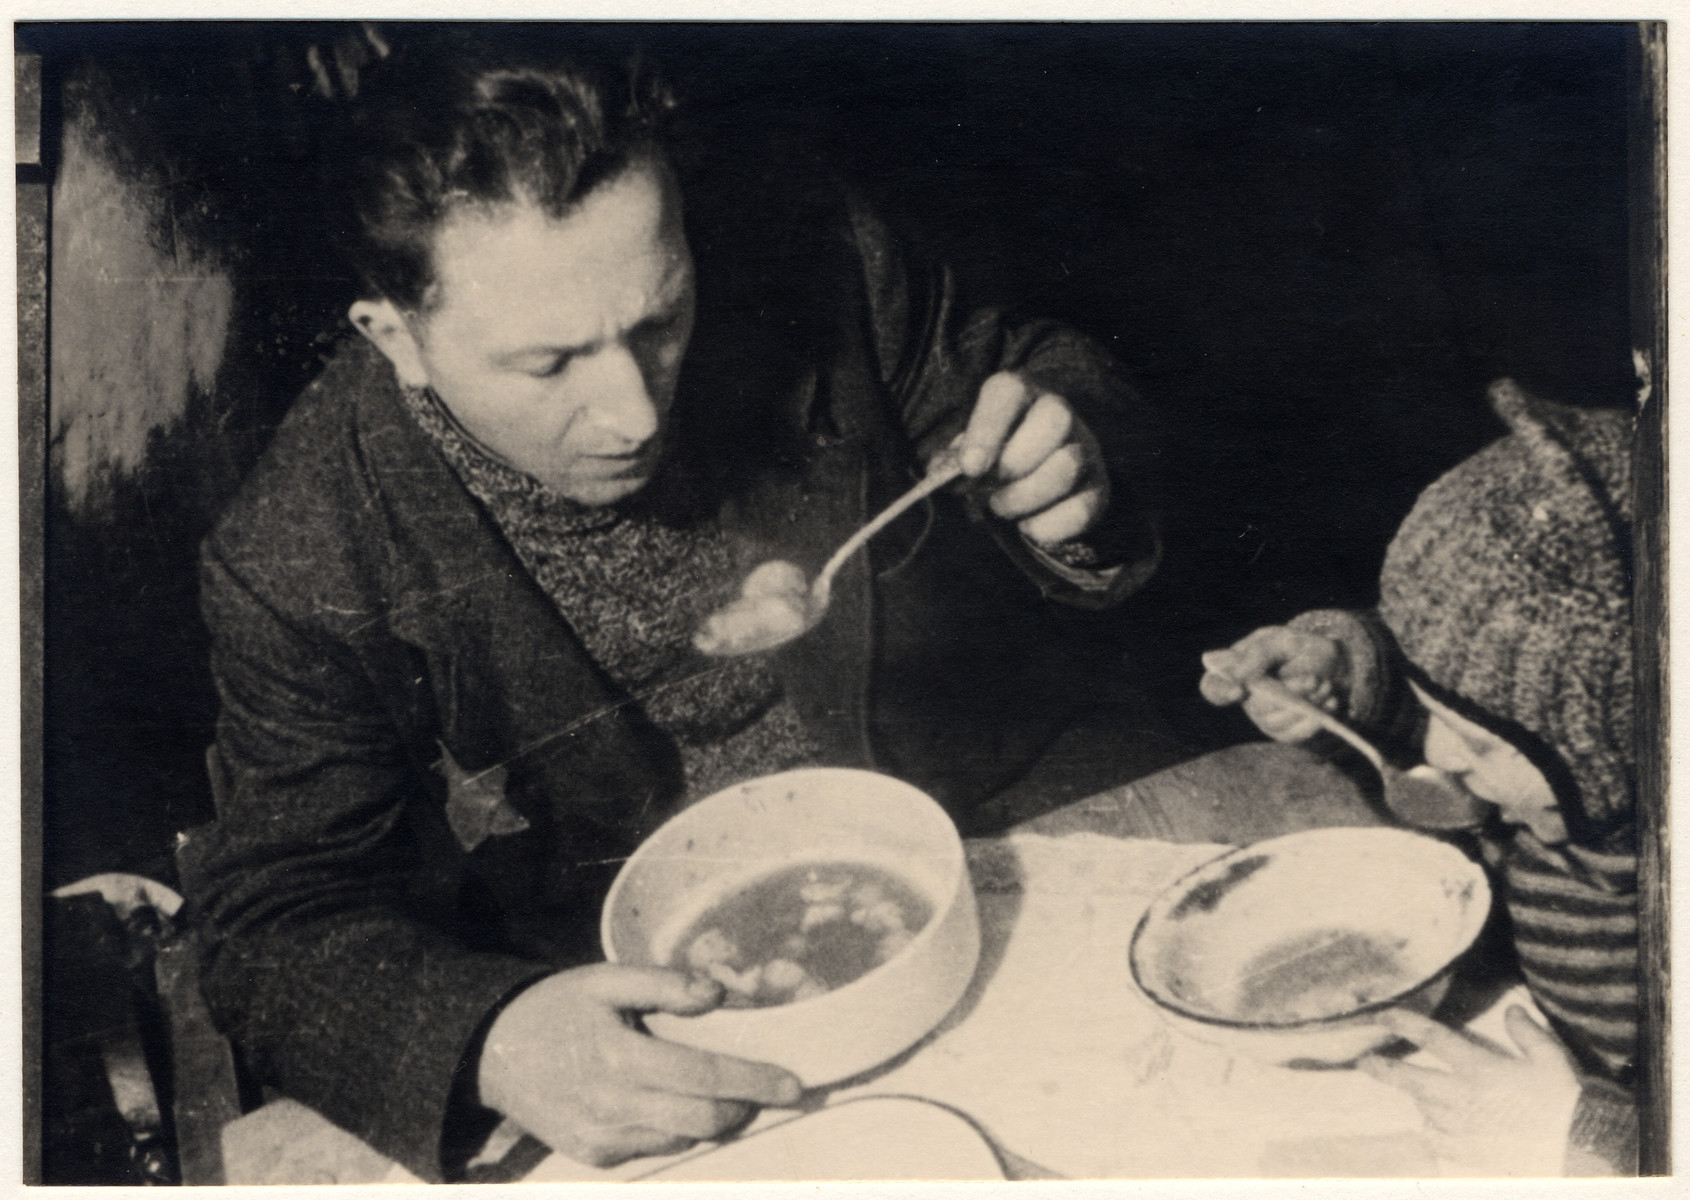 A father and son eat a bowl of soup in their kitchen in the Lodz ghetto.  Pictured are the brother-in-law and nephew of photographer Mendel Grosman.  The nephew was named Yankele Freitag.